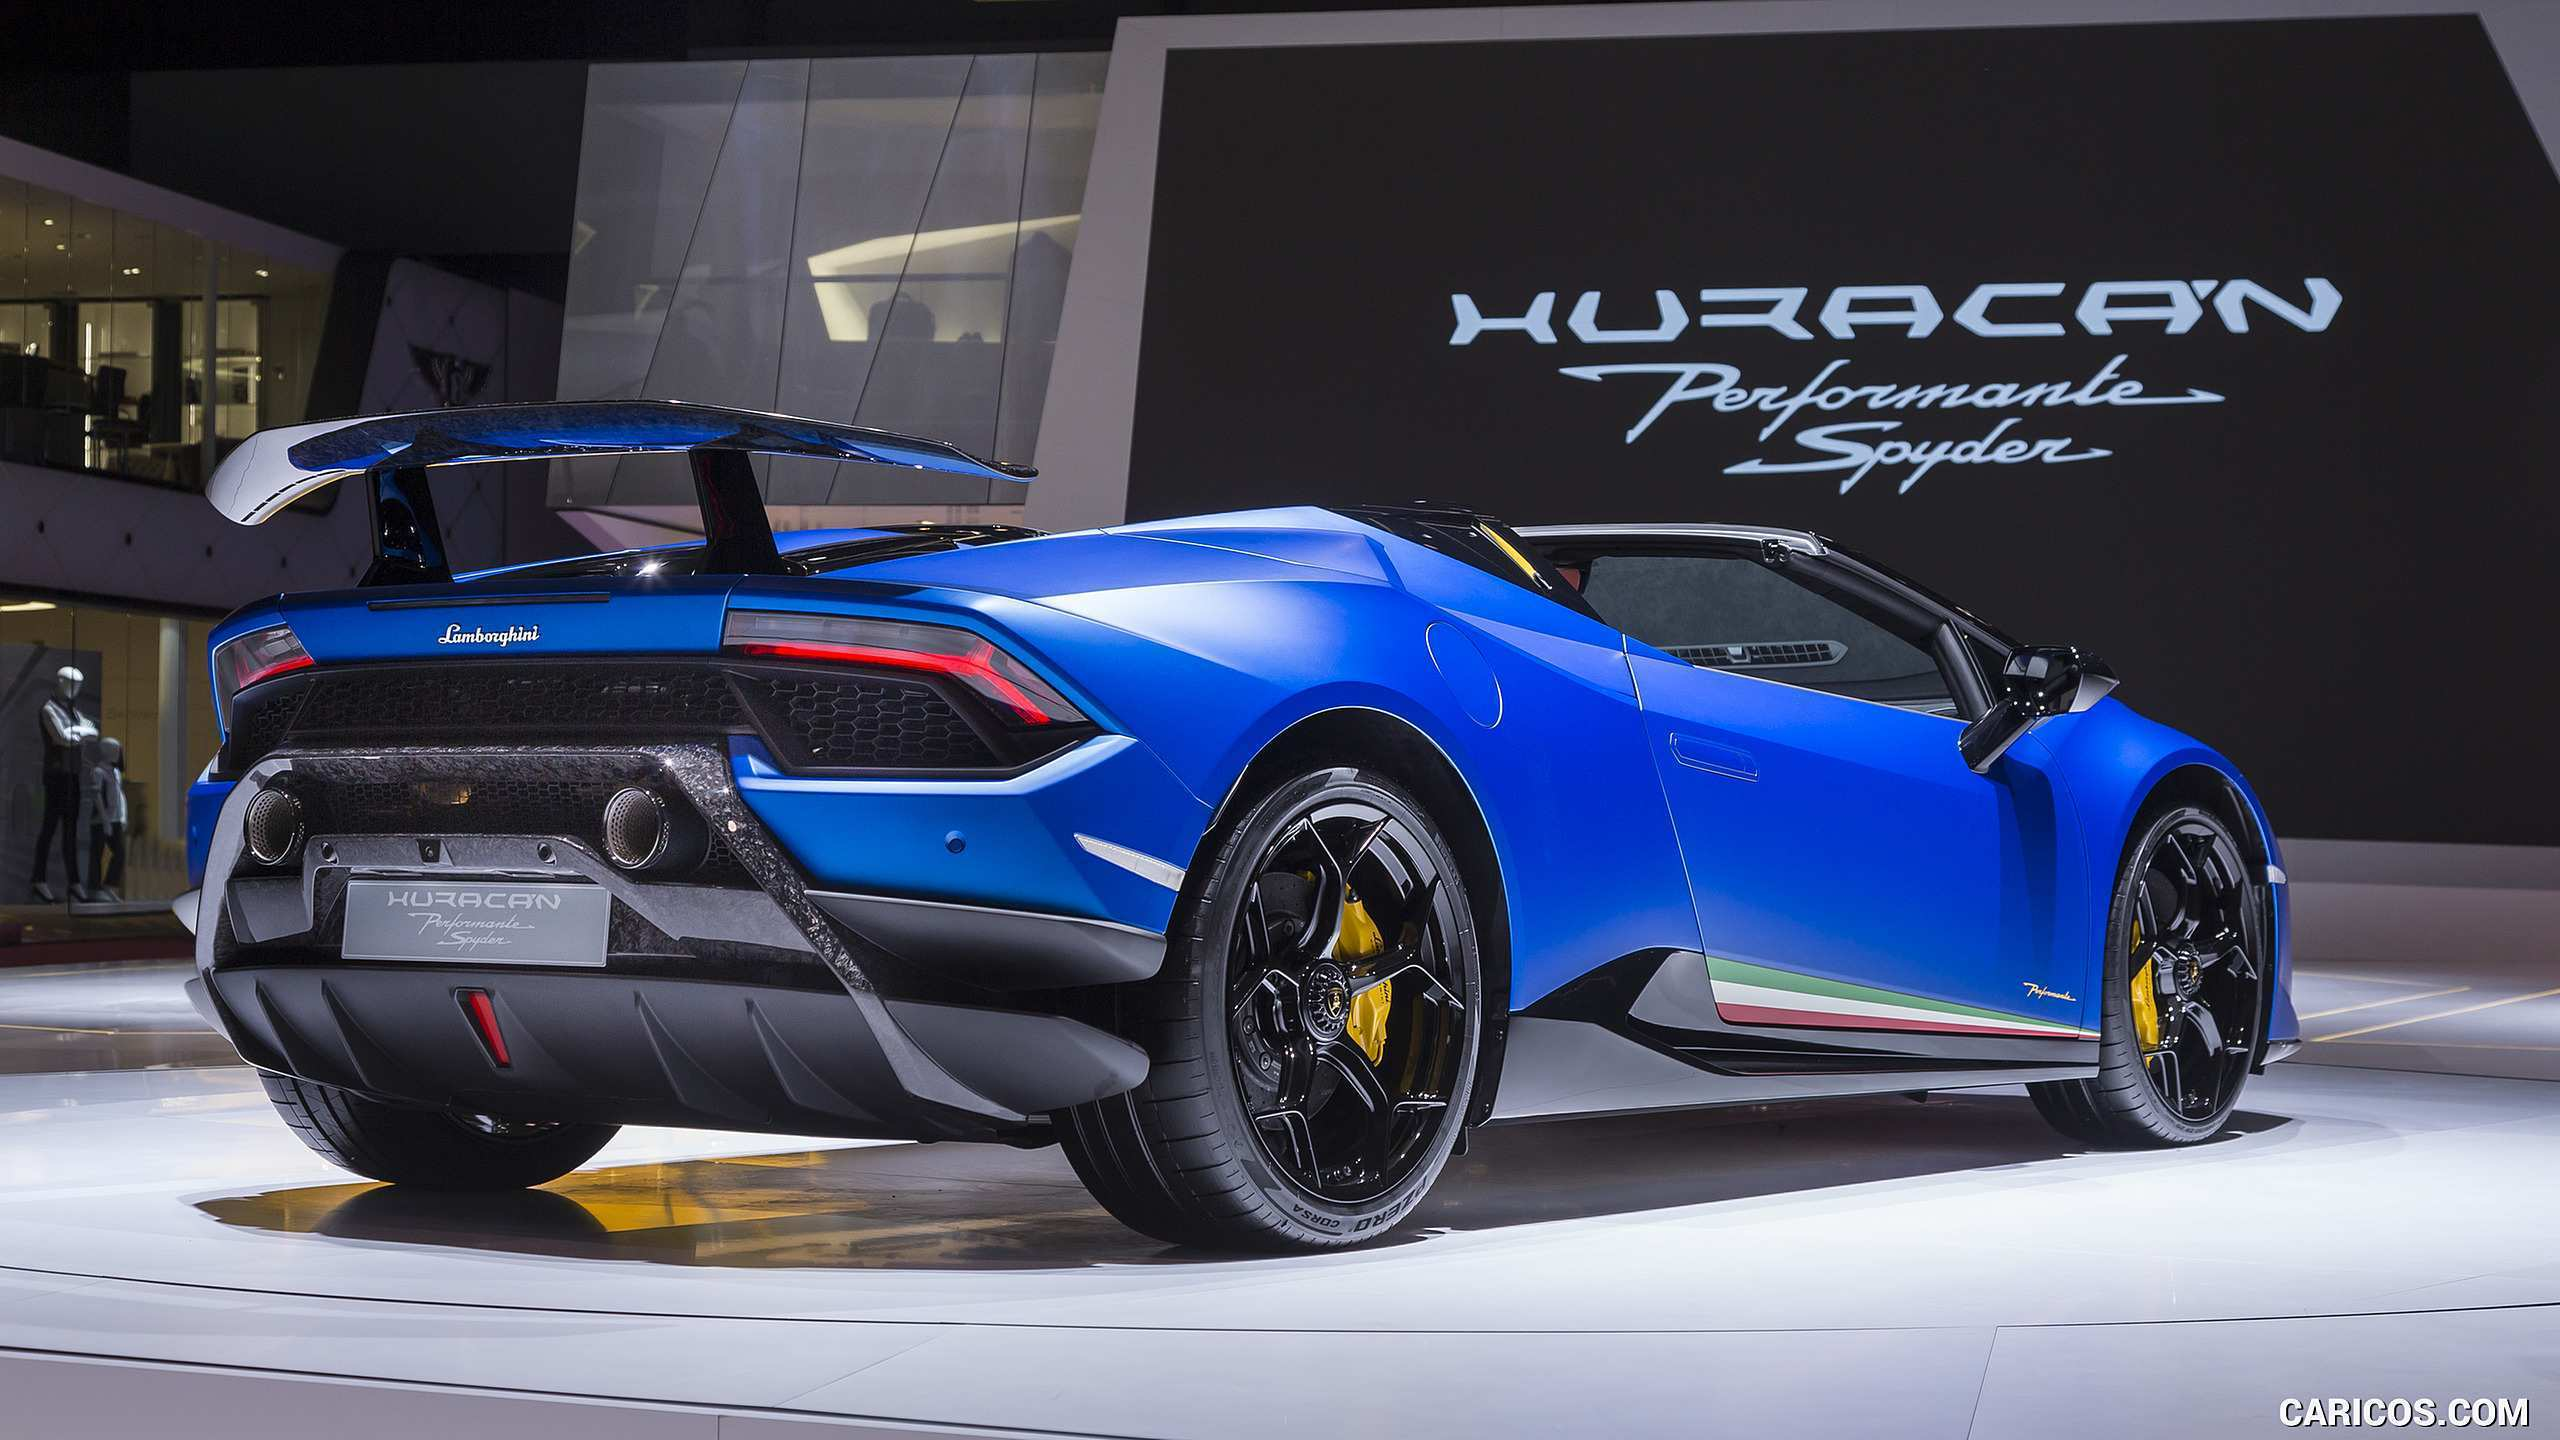 17 Concept of 2019 Lamborghini Spyder Exterior and Interior for 2019 Lamborghini Spyder